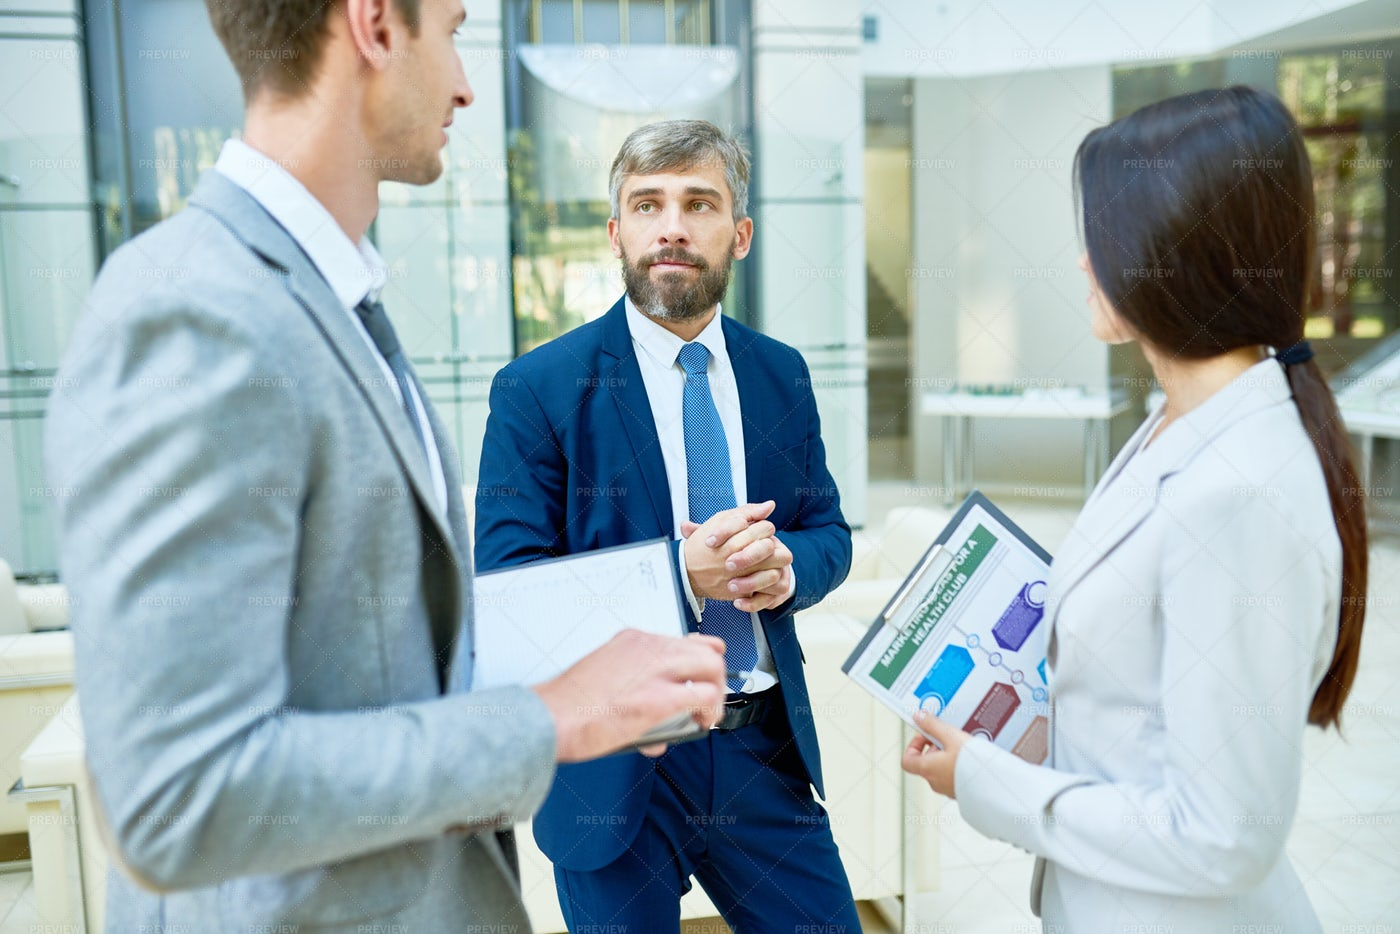 Business People Meeting In Office...: Stock Photos